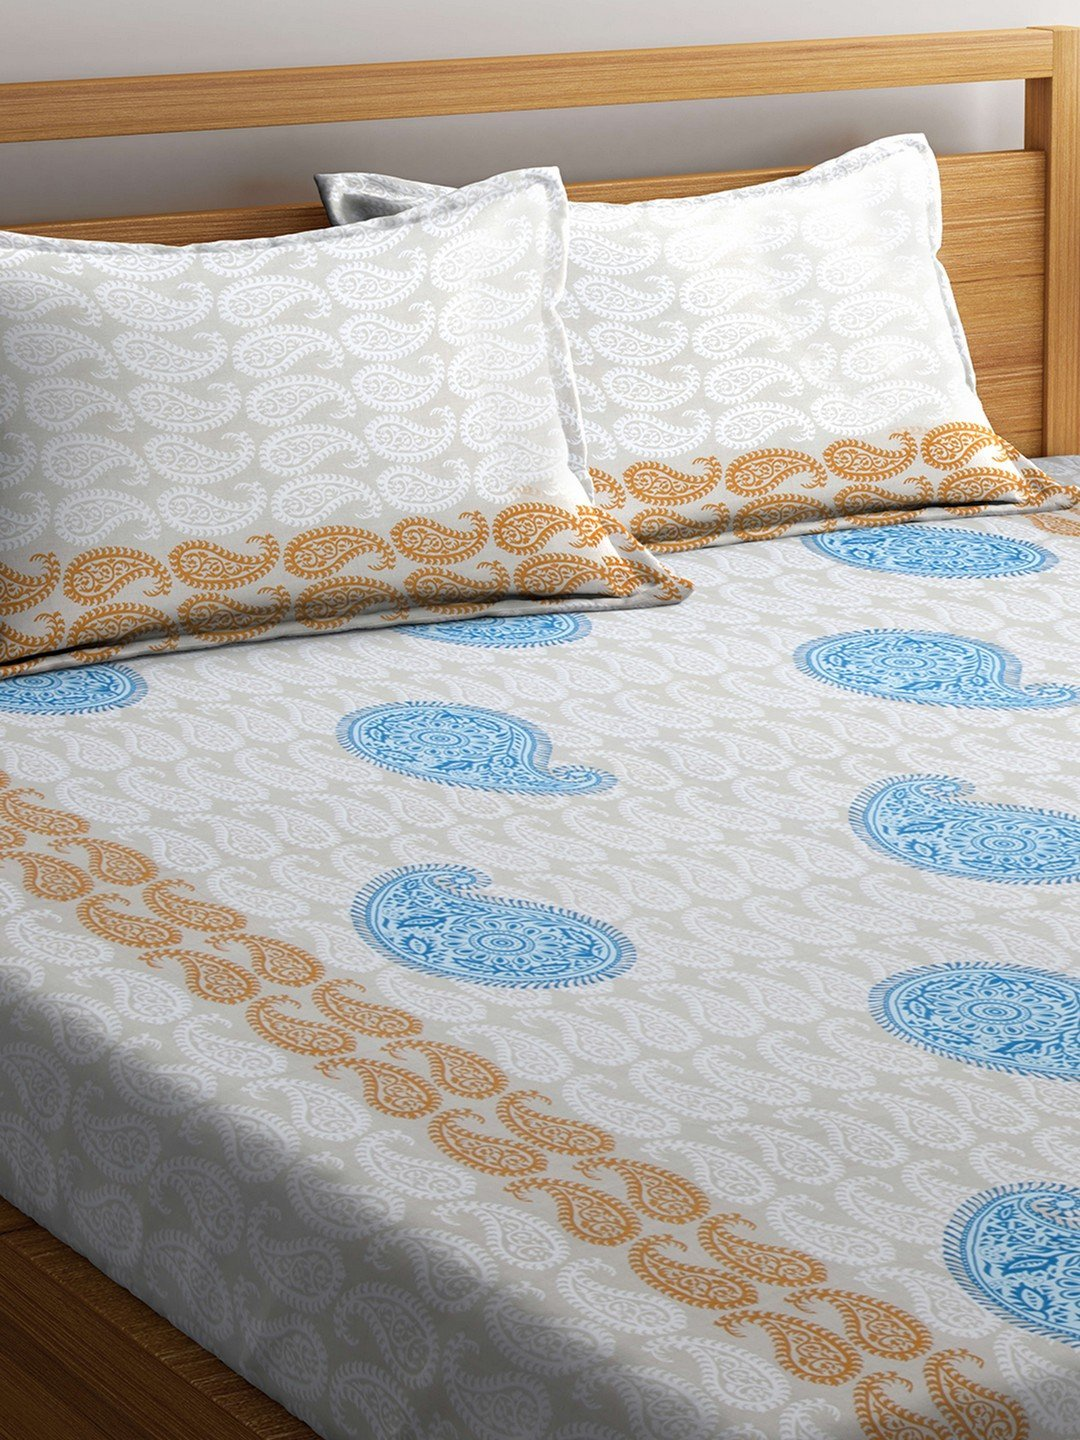 Buy Online Mafatlal White Cotton 144 TC Double Bed Sheet With Pillow Covers